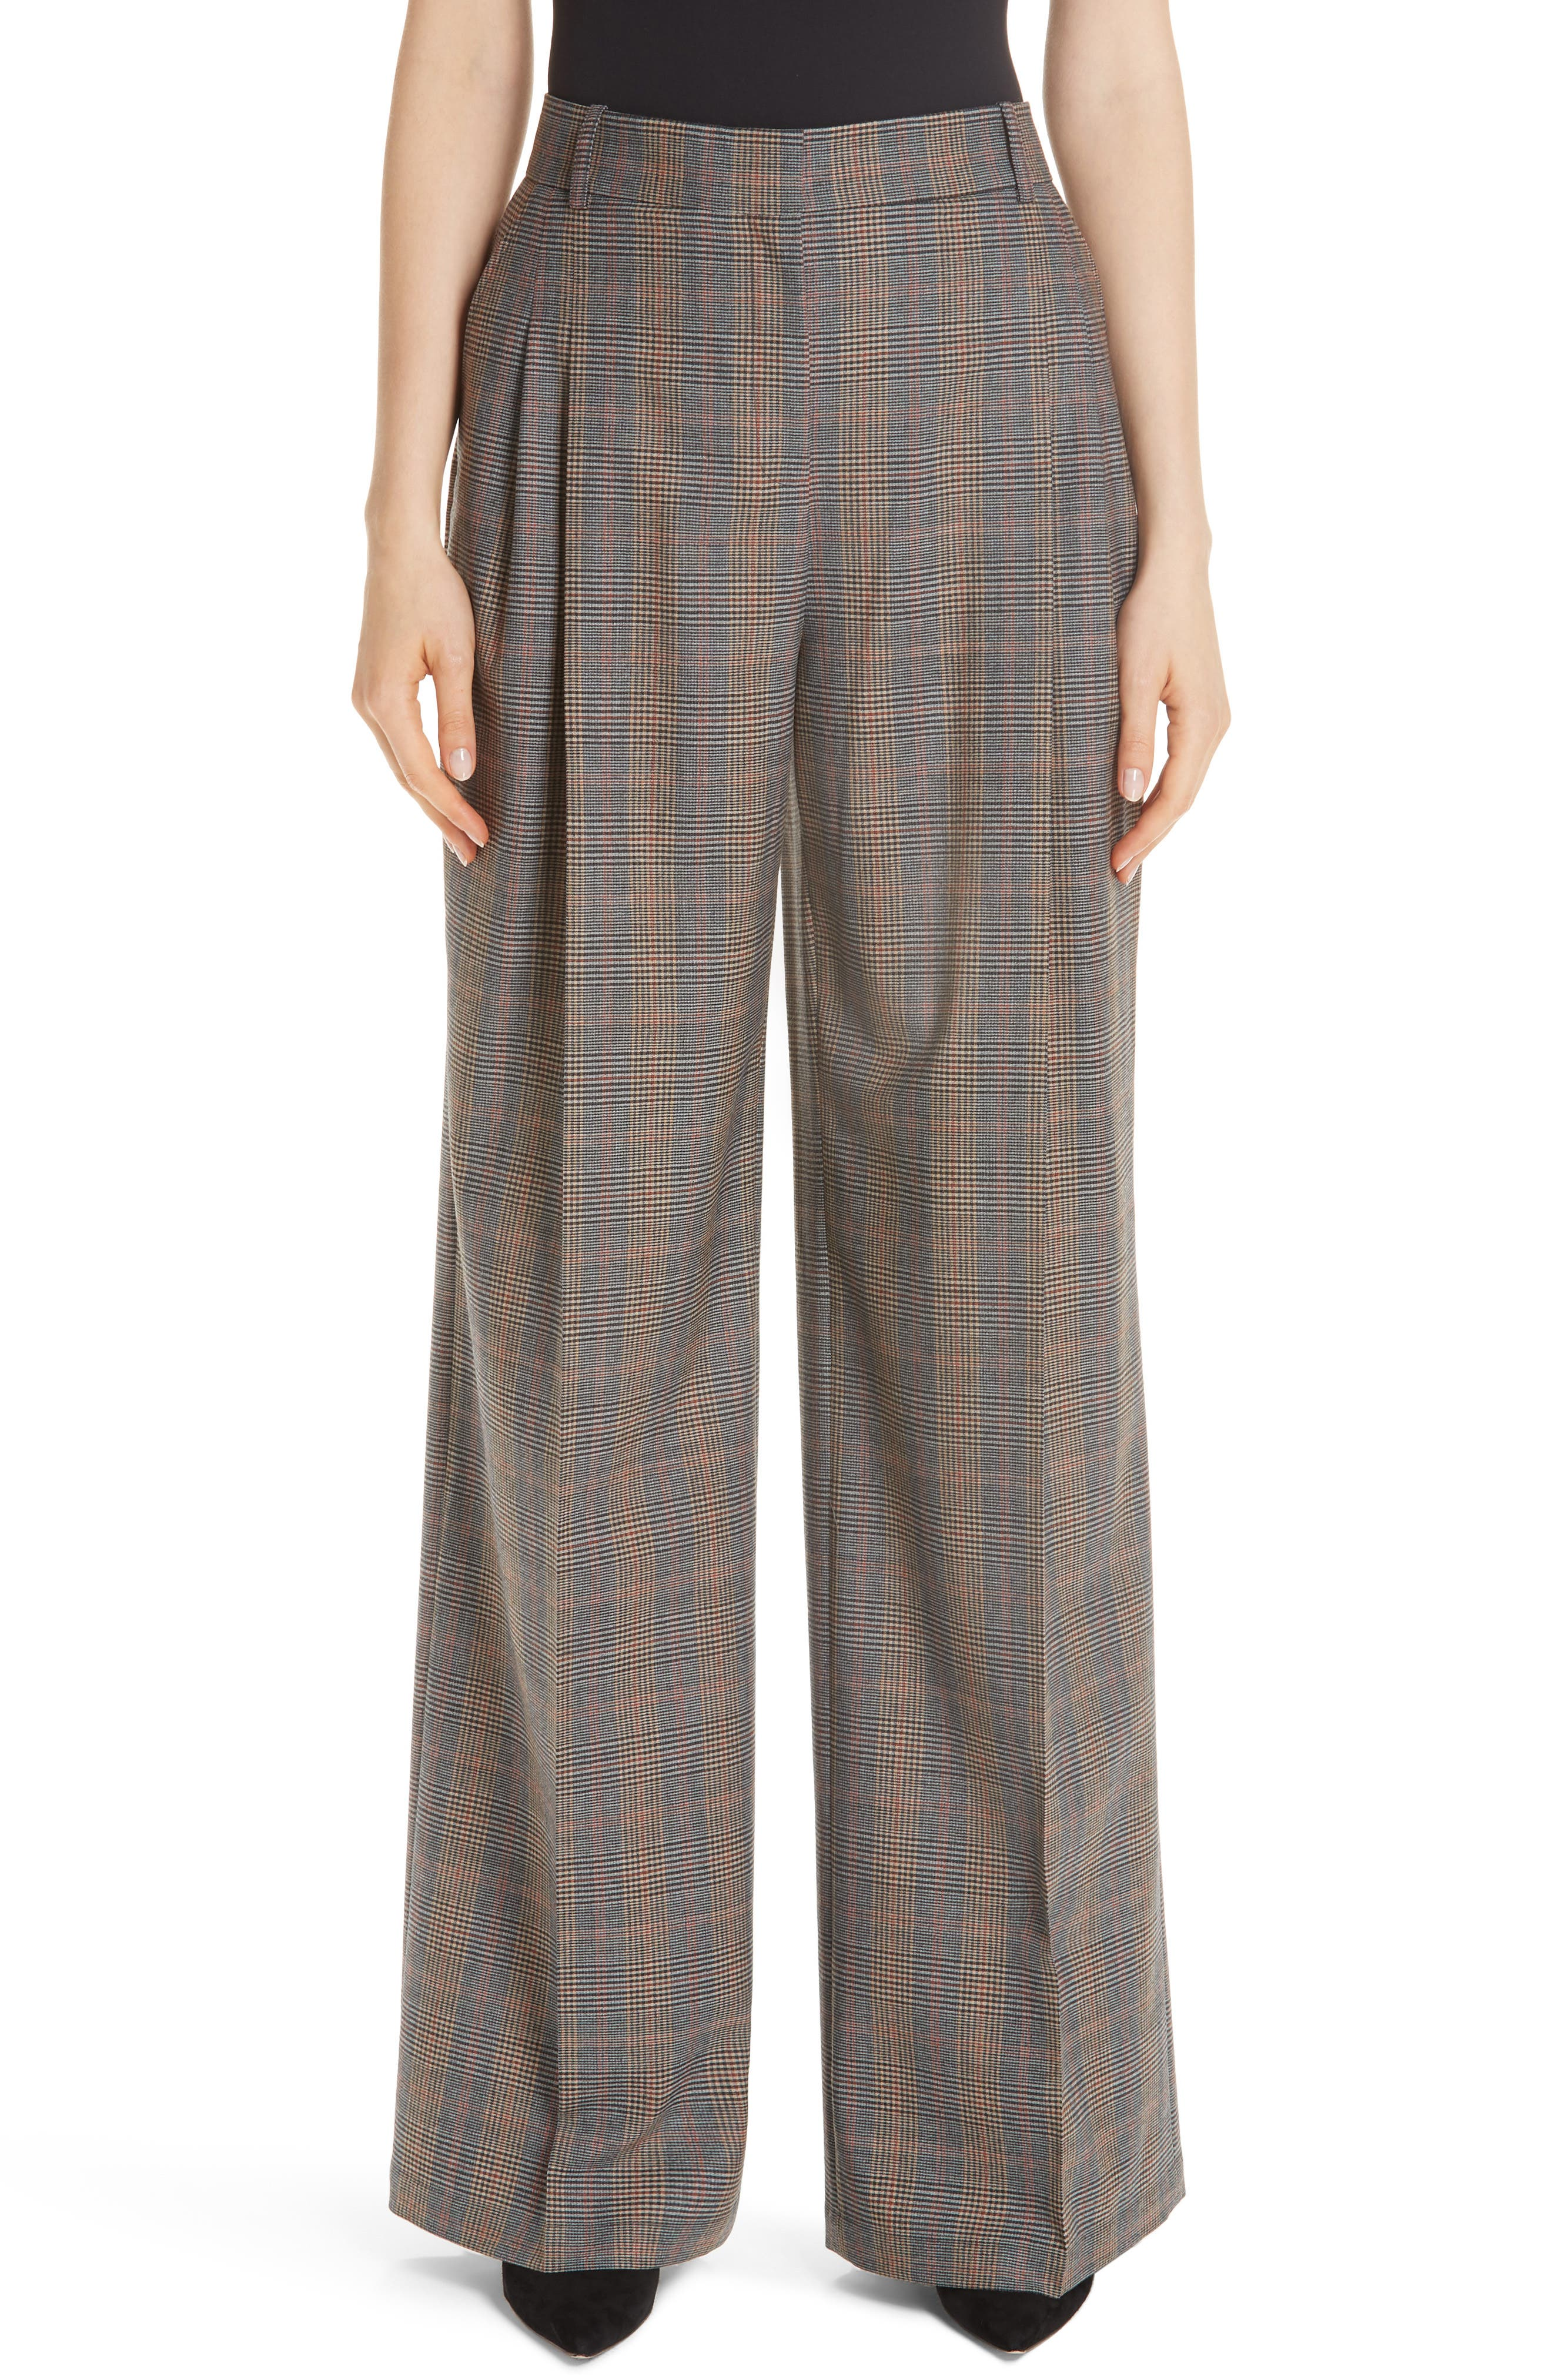 Quincy Stretch Wool Pants,                         Main,                         color, SUNSTONE MULTI